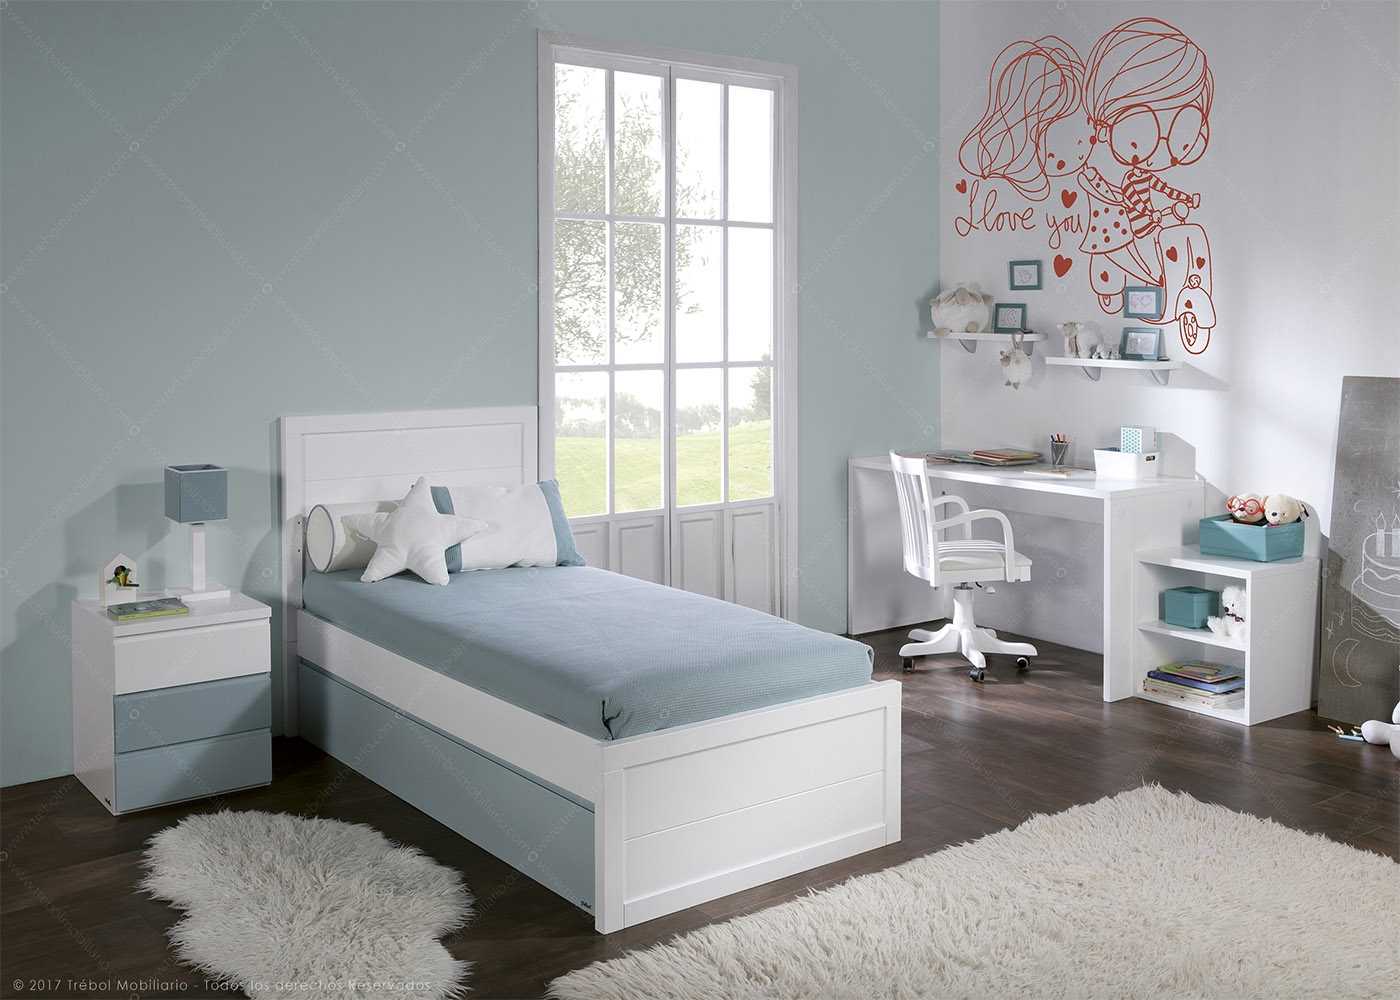 chambre fille ou gar u00e7on design et de qualit u00e9 trebol chez ksl living